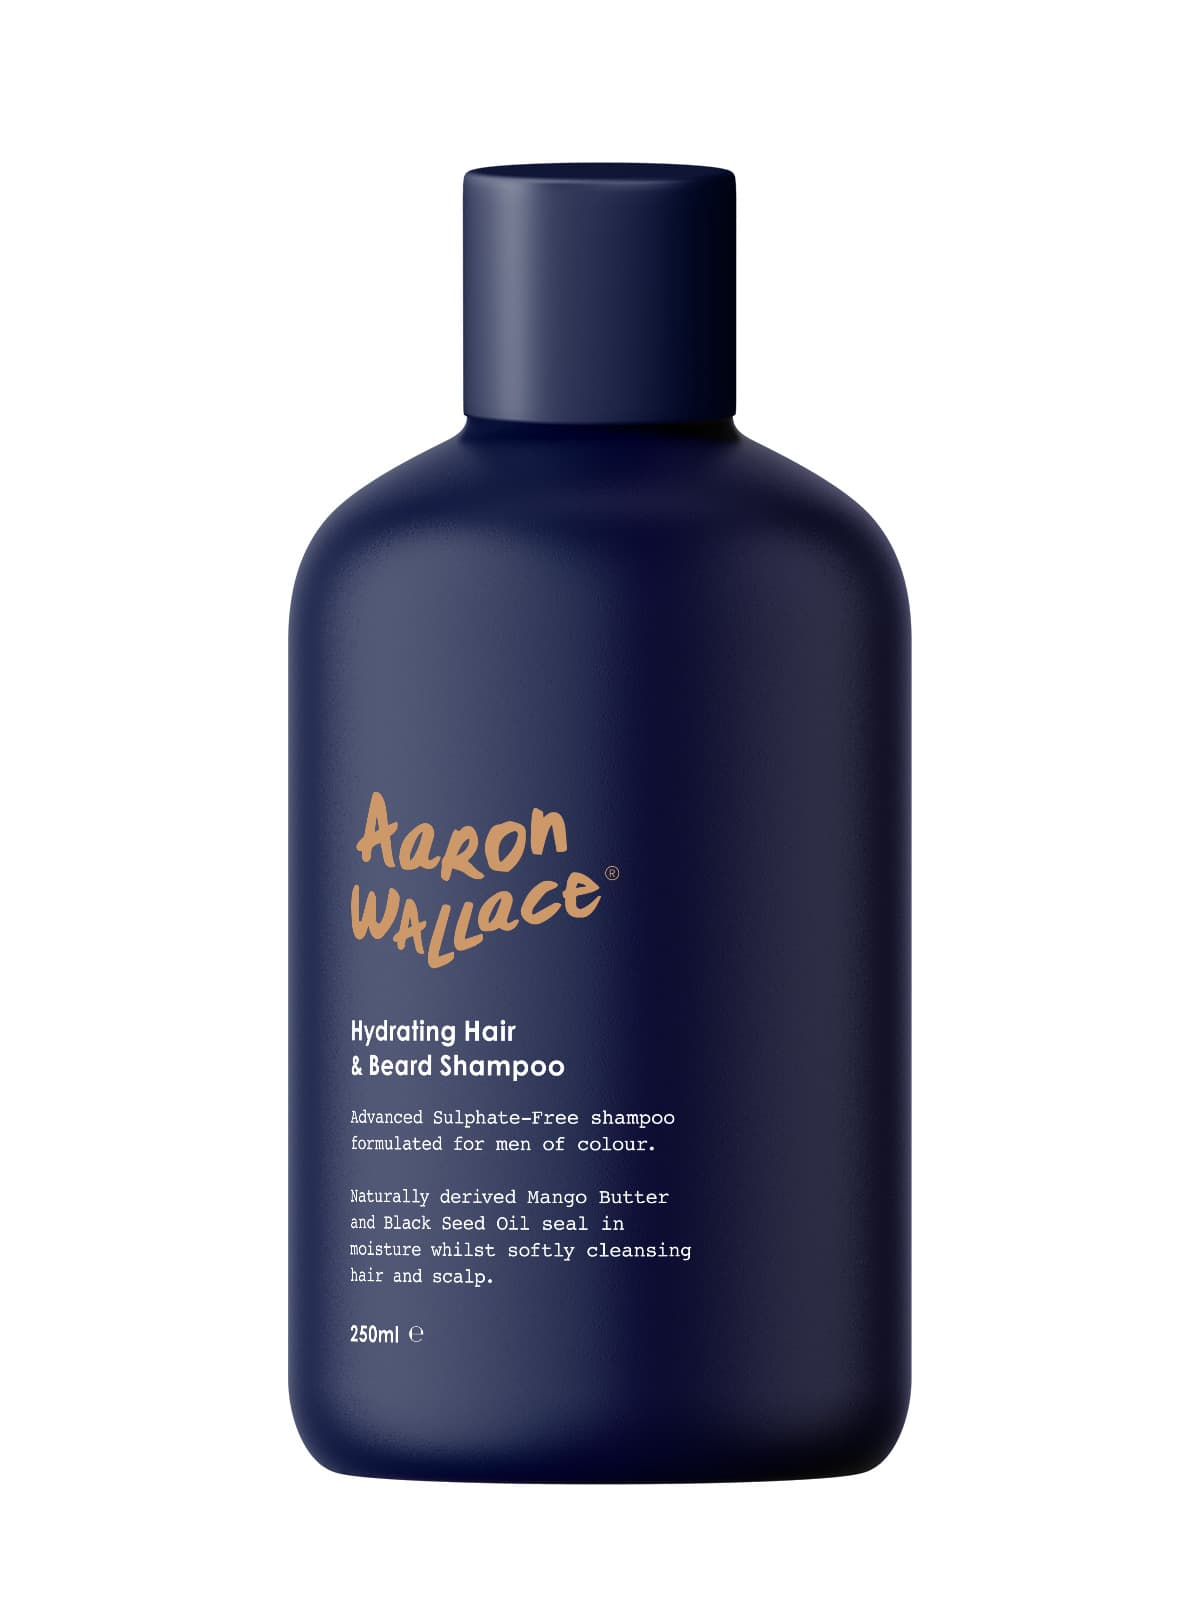 Aaron Wallace Hydrating Hair & Beard Shampoo Beauty Supply store, all natural products for men. The wh shop is the sephora for black owned brands